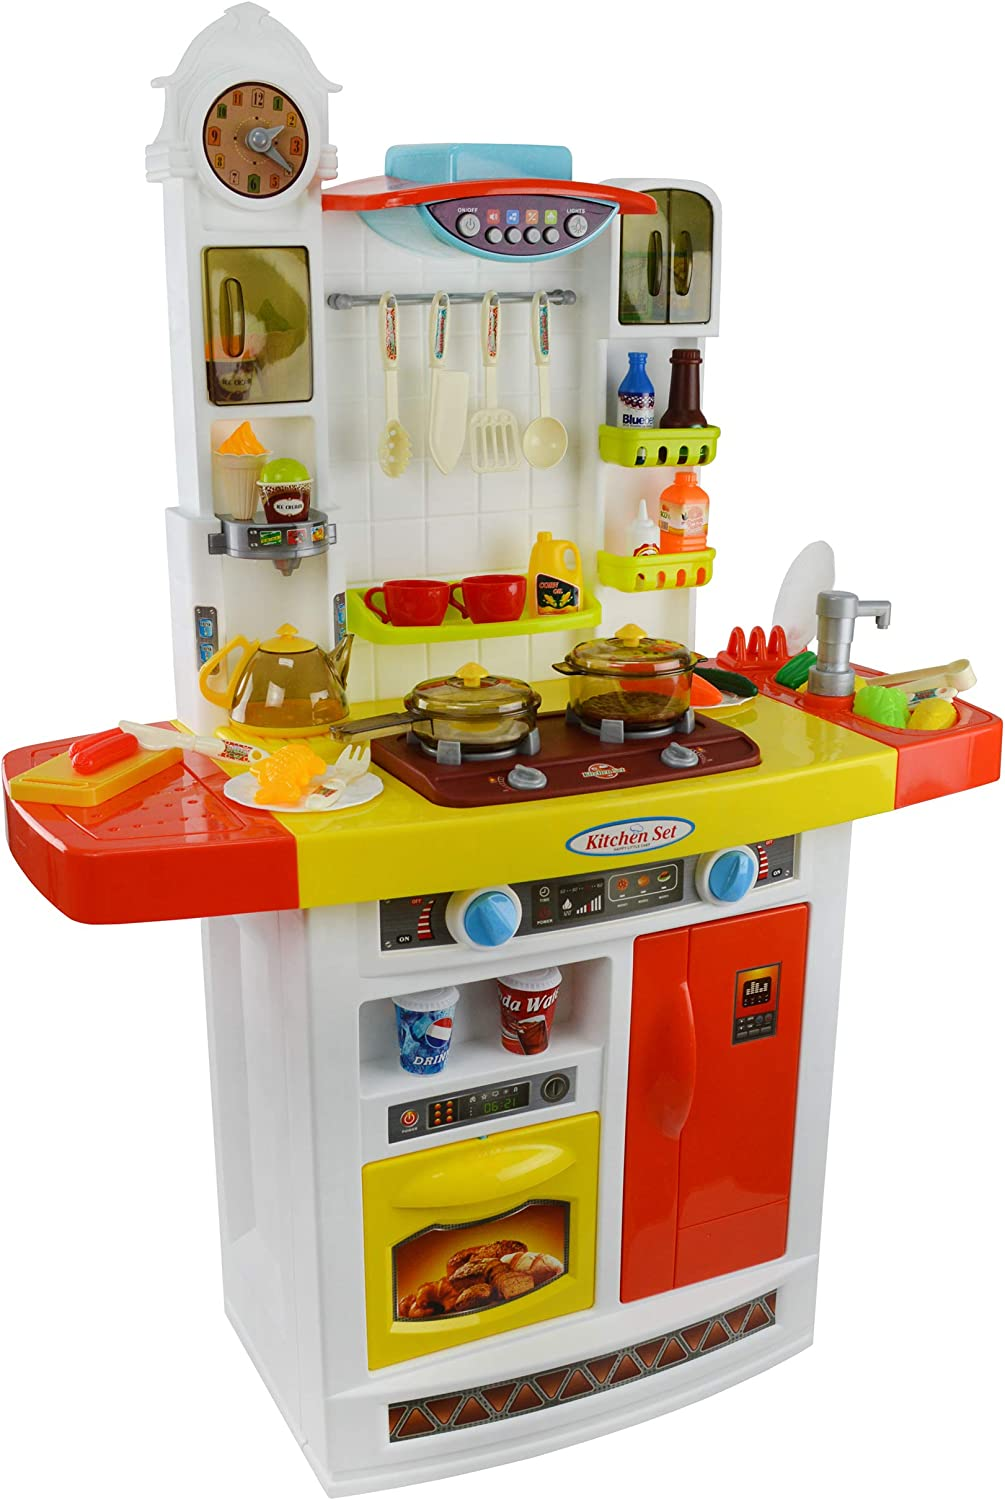 Jimmy's Toys Kids Play Kitchen Playset with Music, Real Water Sink, Realistic Sounds, Pots, Pan, Dishes, and Accessories (Cosina para Niñas y Niños) (Orange)